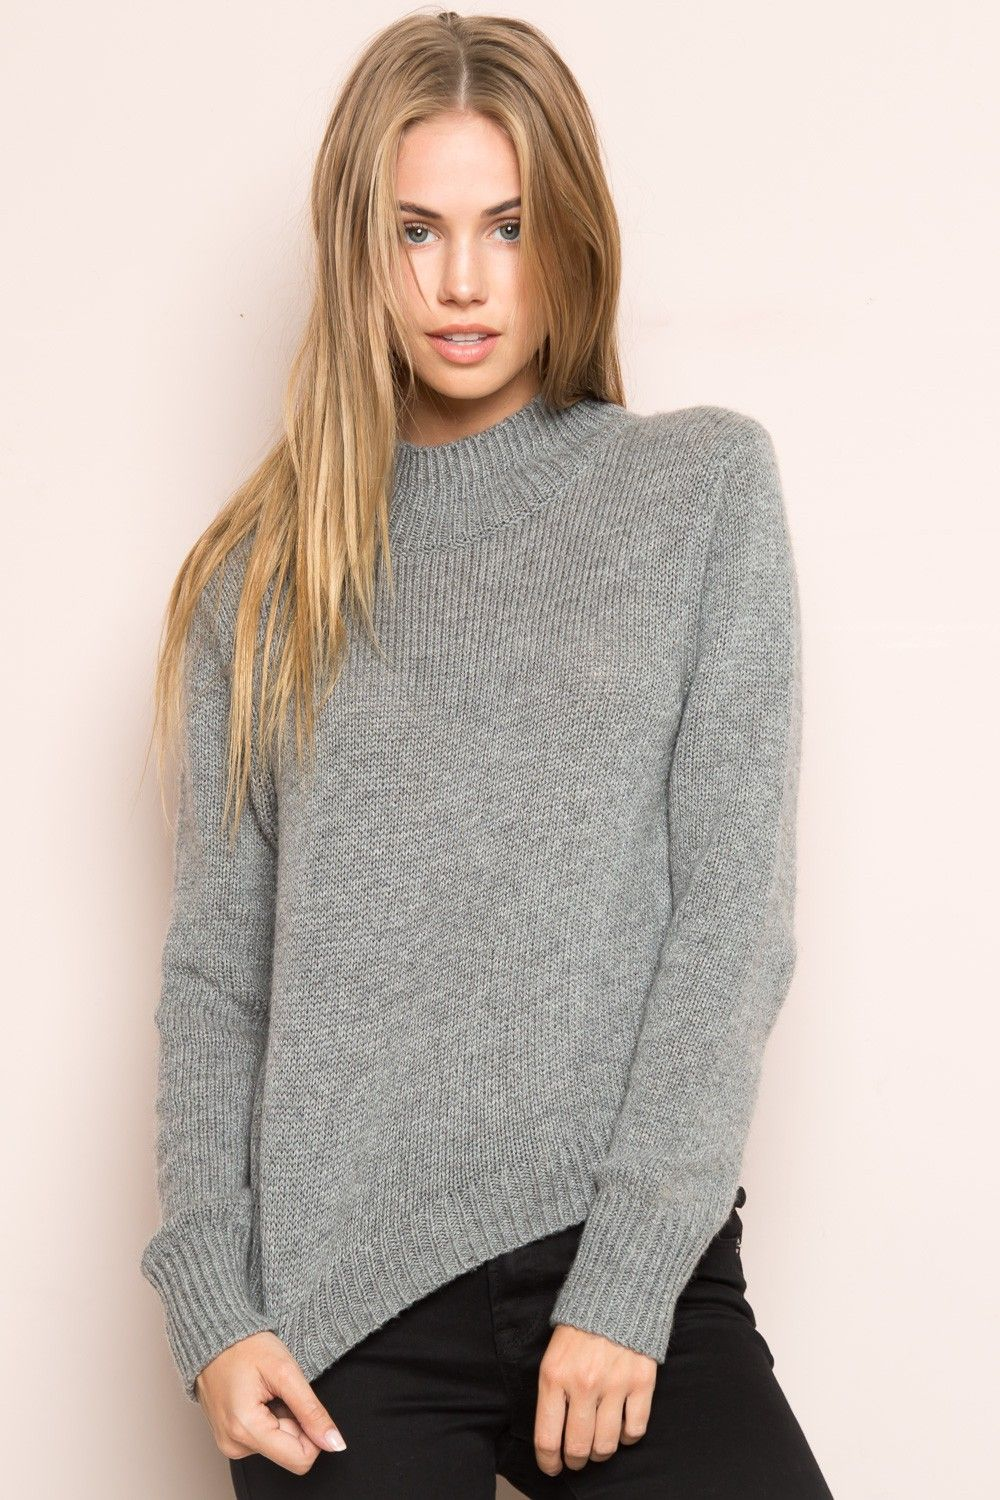 Brandy ♥ Melville | Sydney Turtleneck Sweater - Sweaters ...